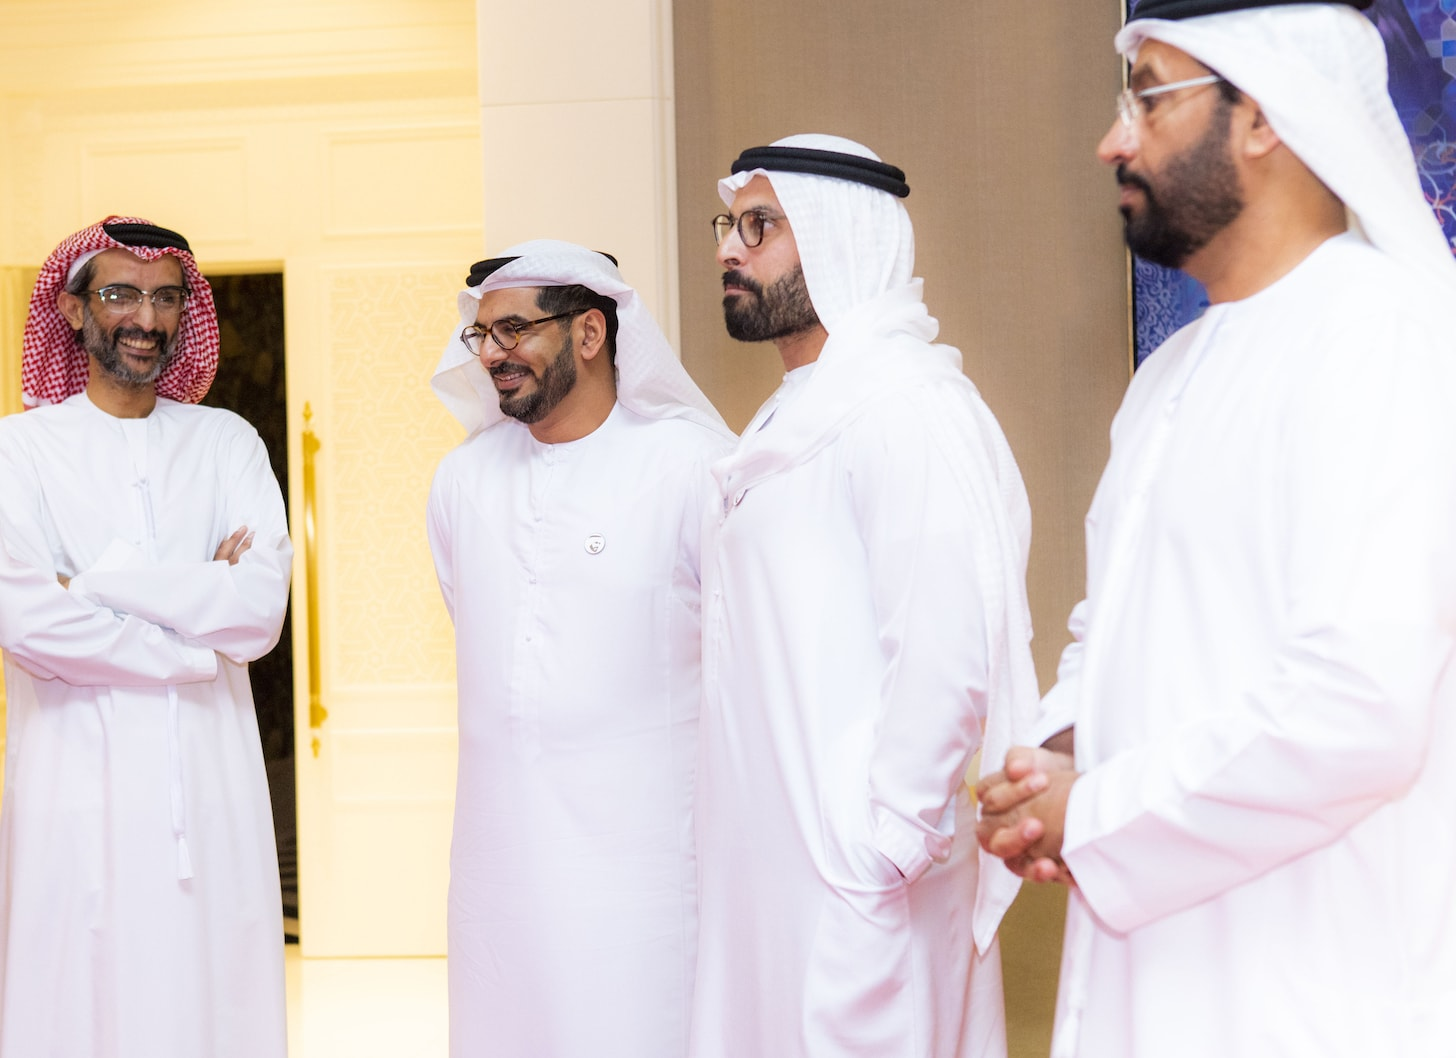 Aldar launches Provis to disrupt estate management solutions in the UAE